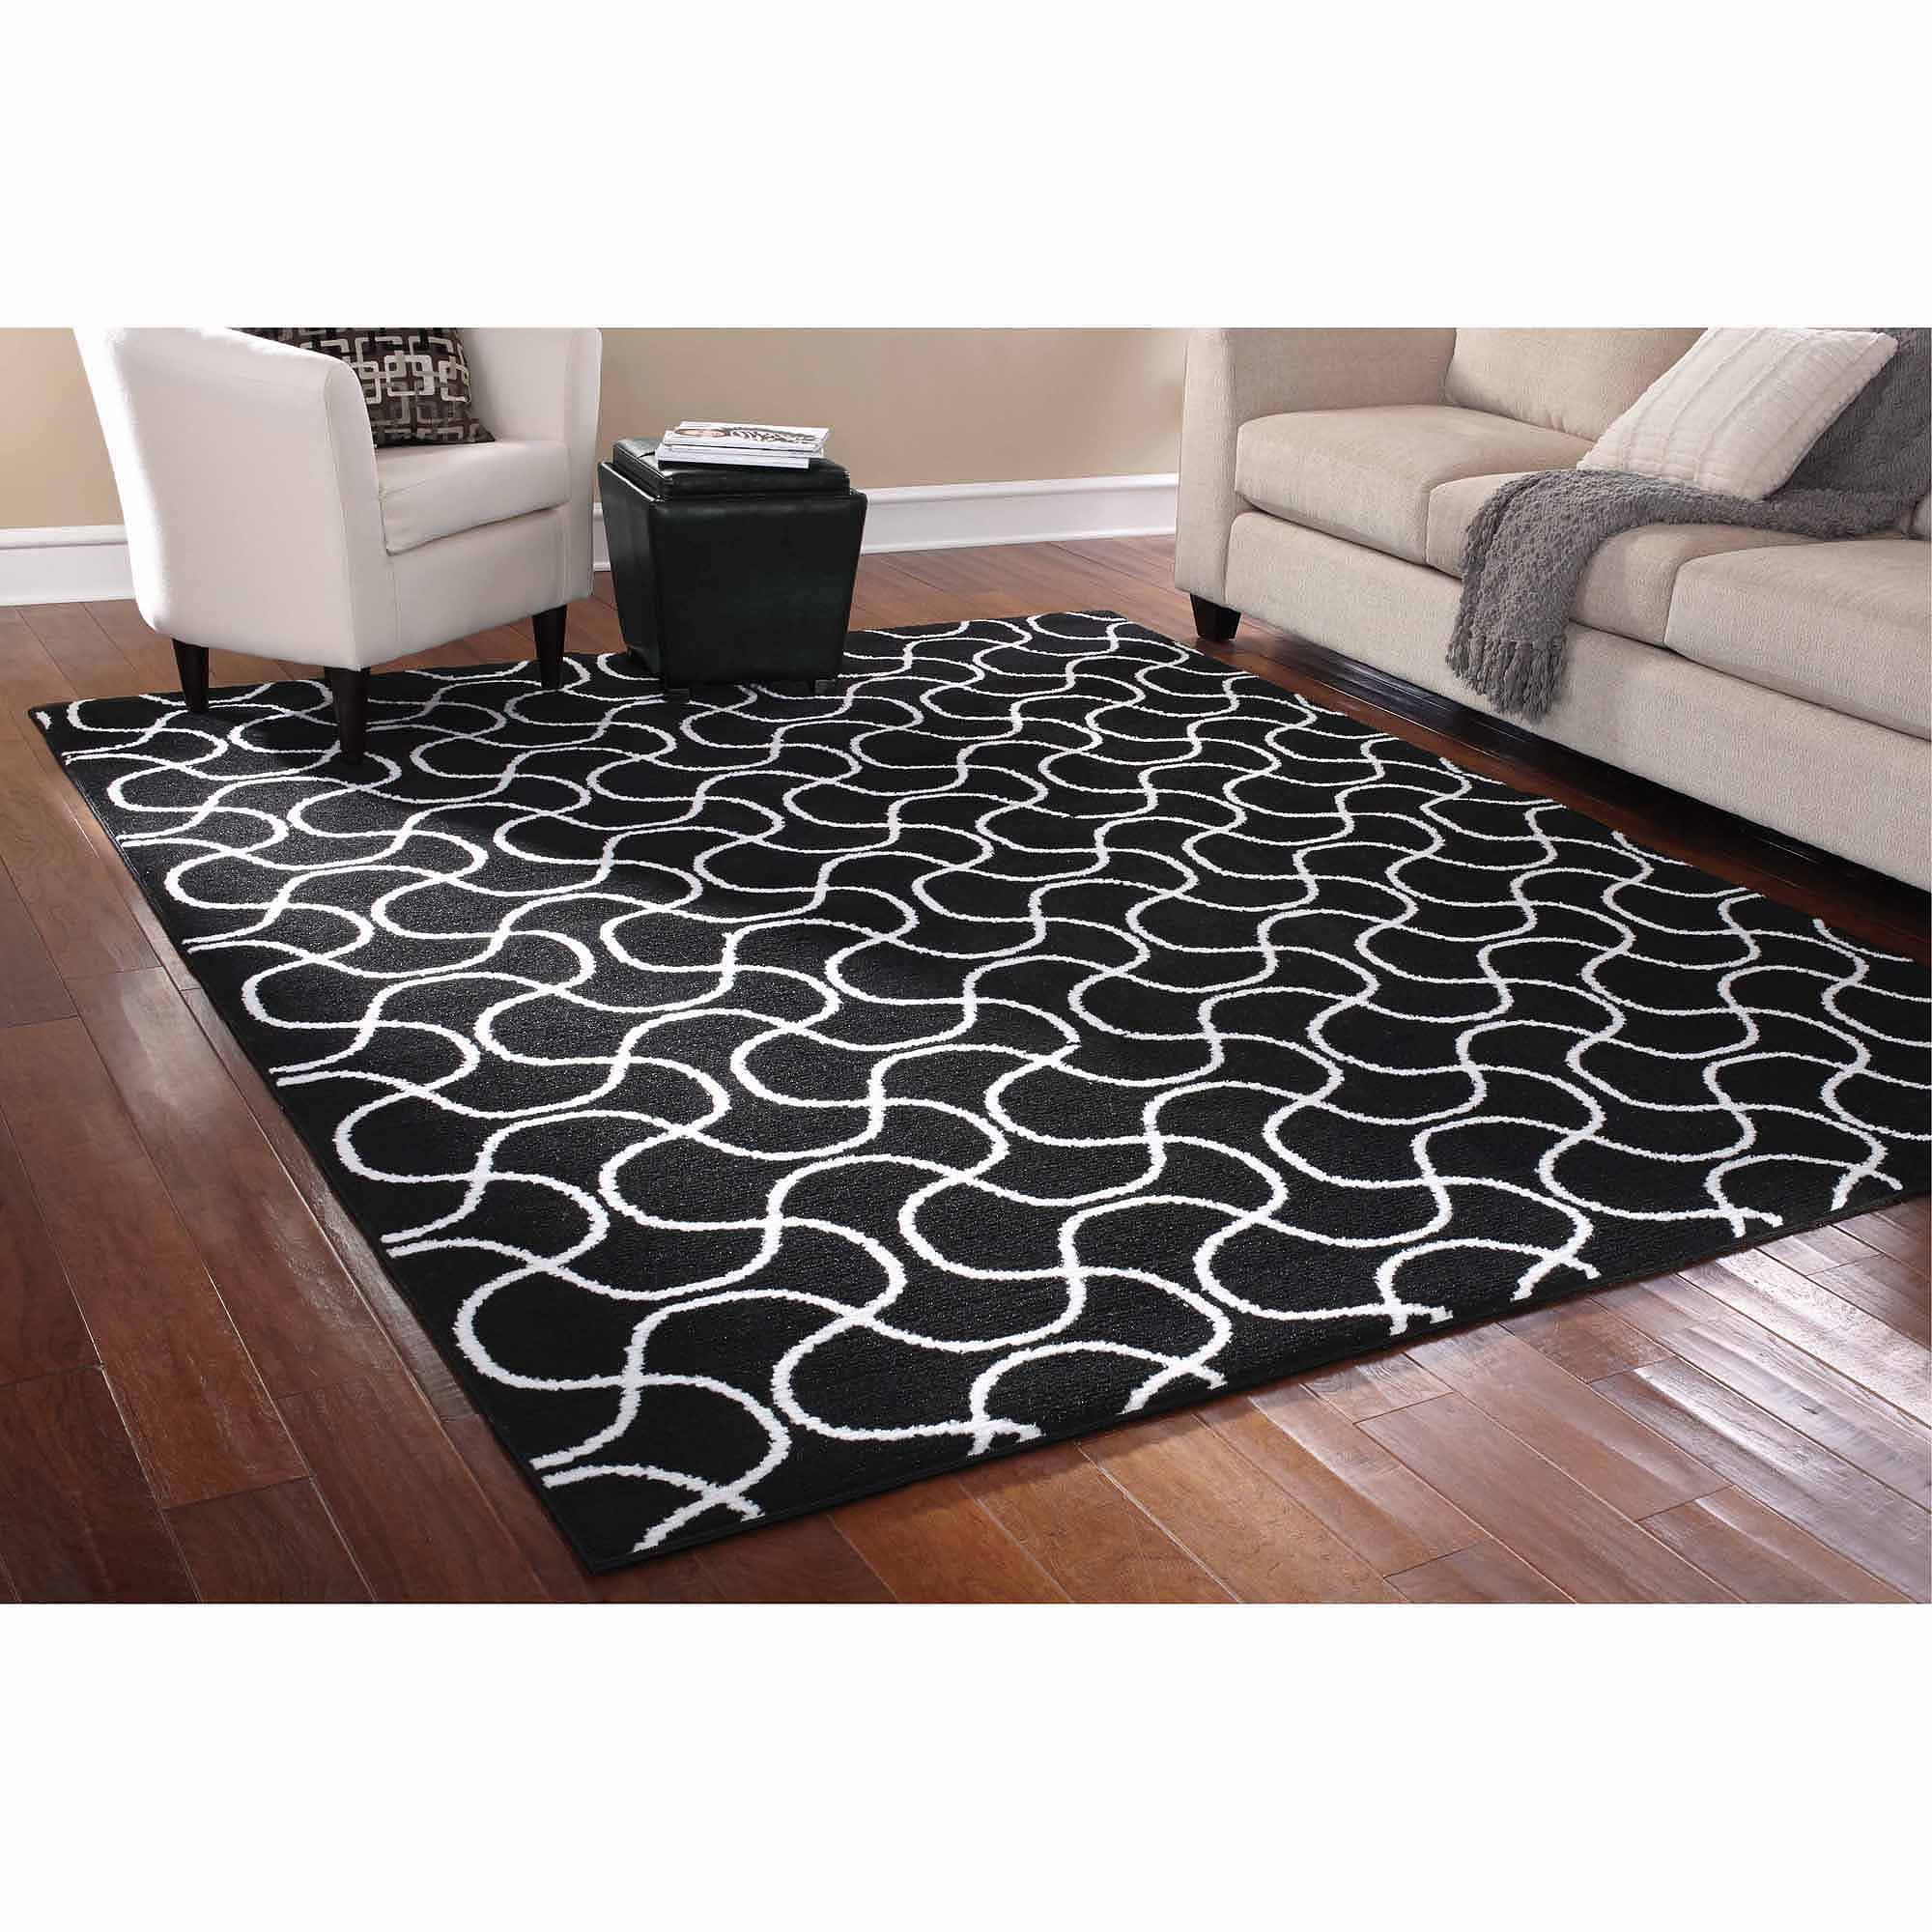 details about 8 x 10 indoor black white area rug mat carpet living room contemporary decor